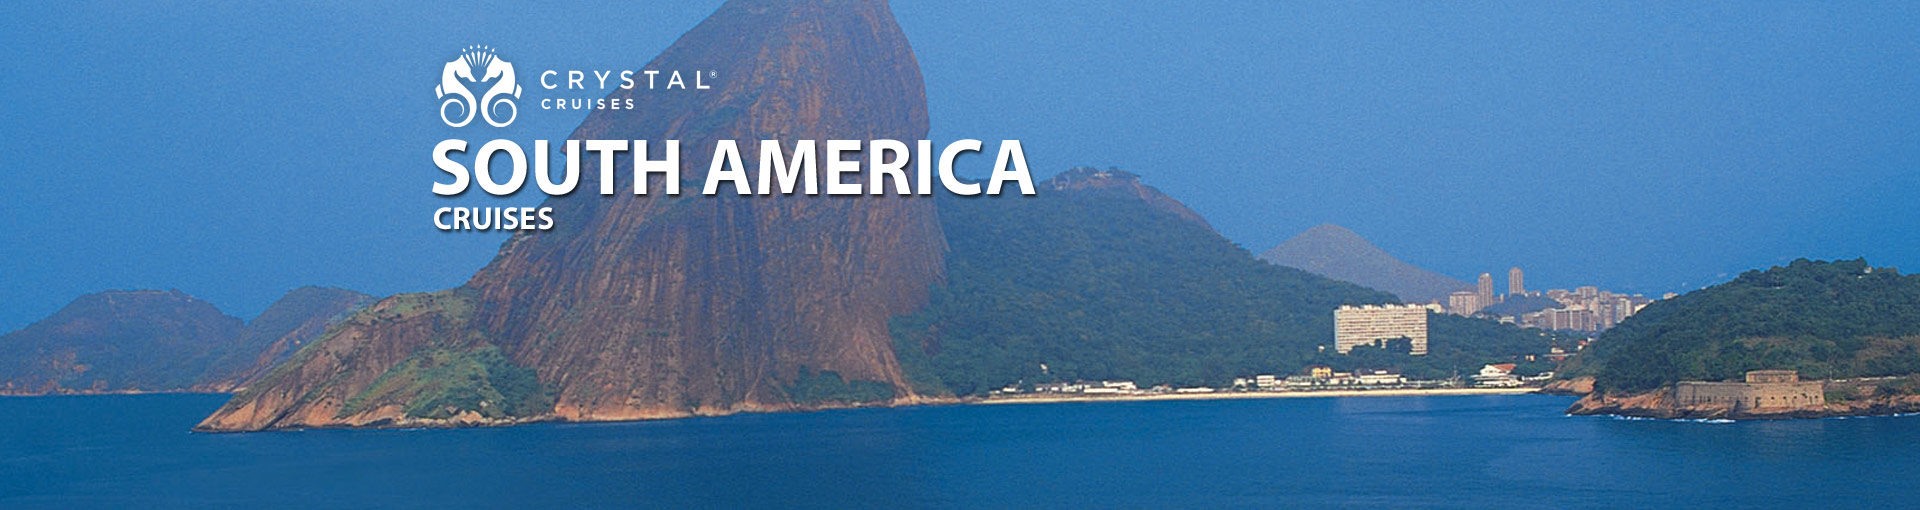 Crystal Cruises South America Cruises